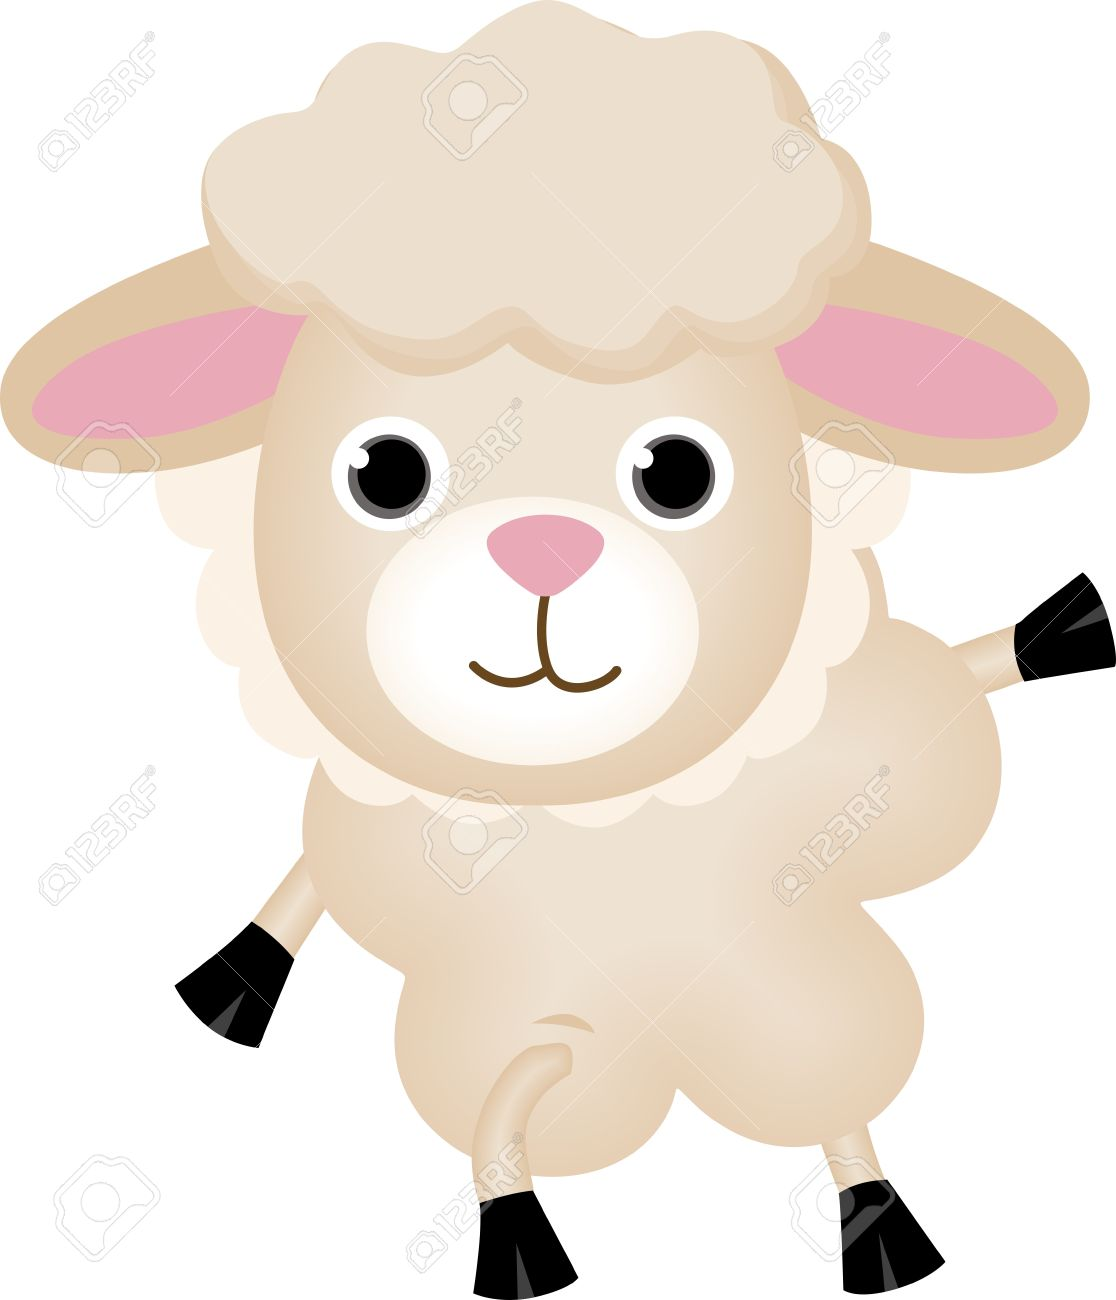 Cute Lamb Illustration